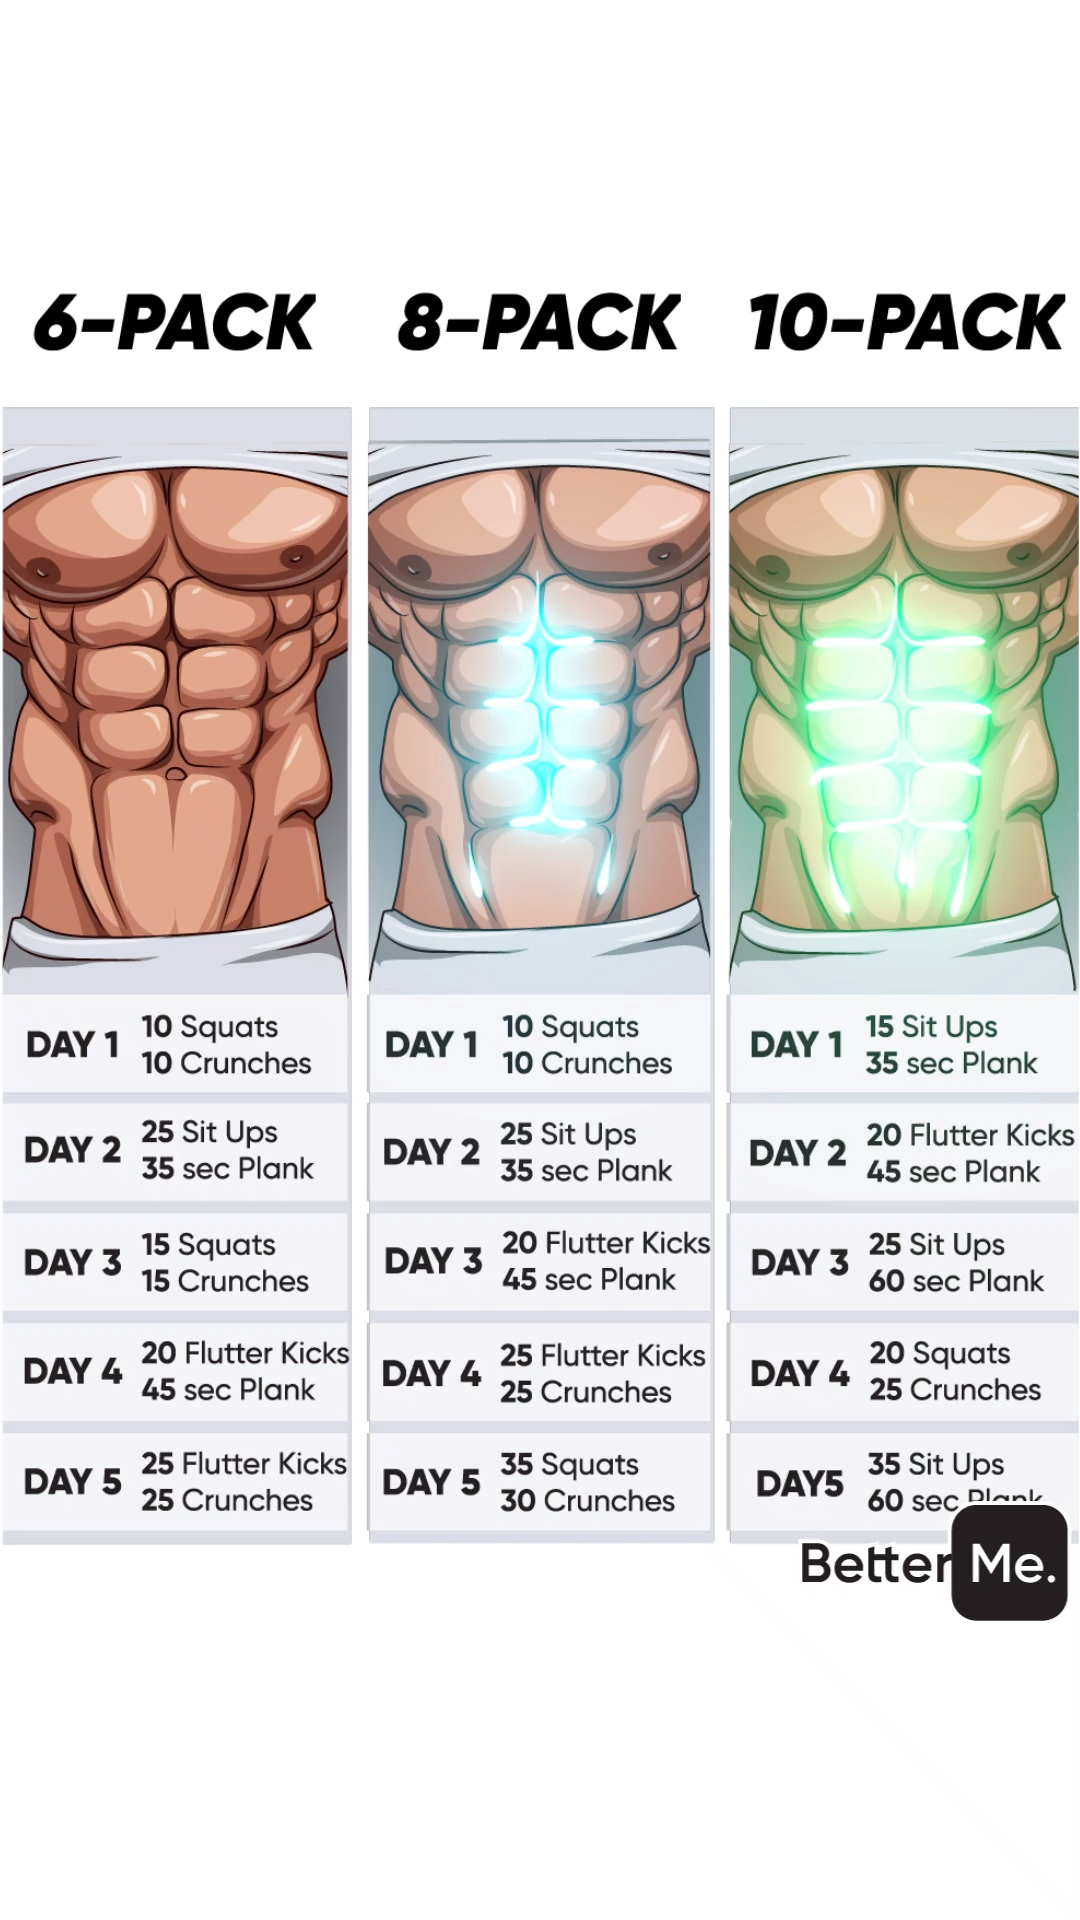 Pin By Romek On Gym Workouts Video Gym Workout Tips Abs Workout Workout Apps